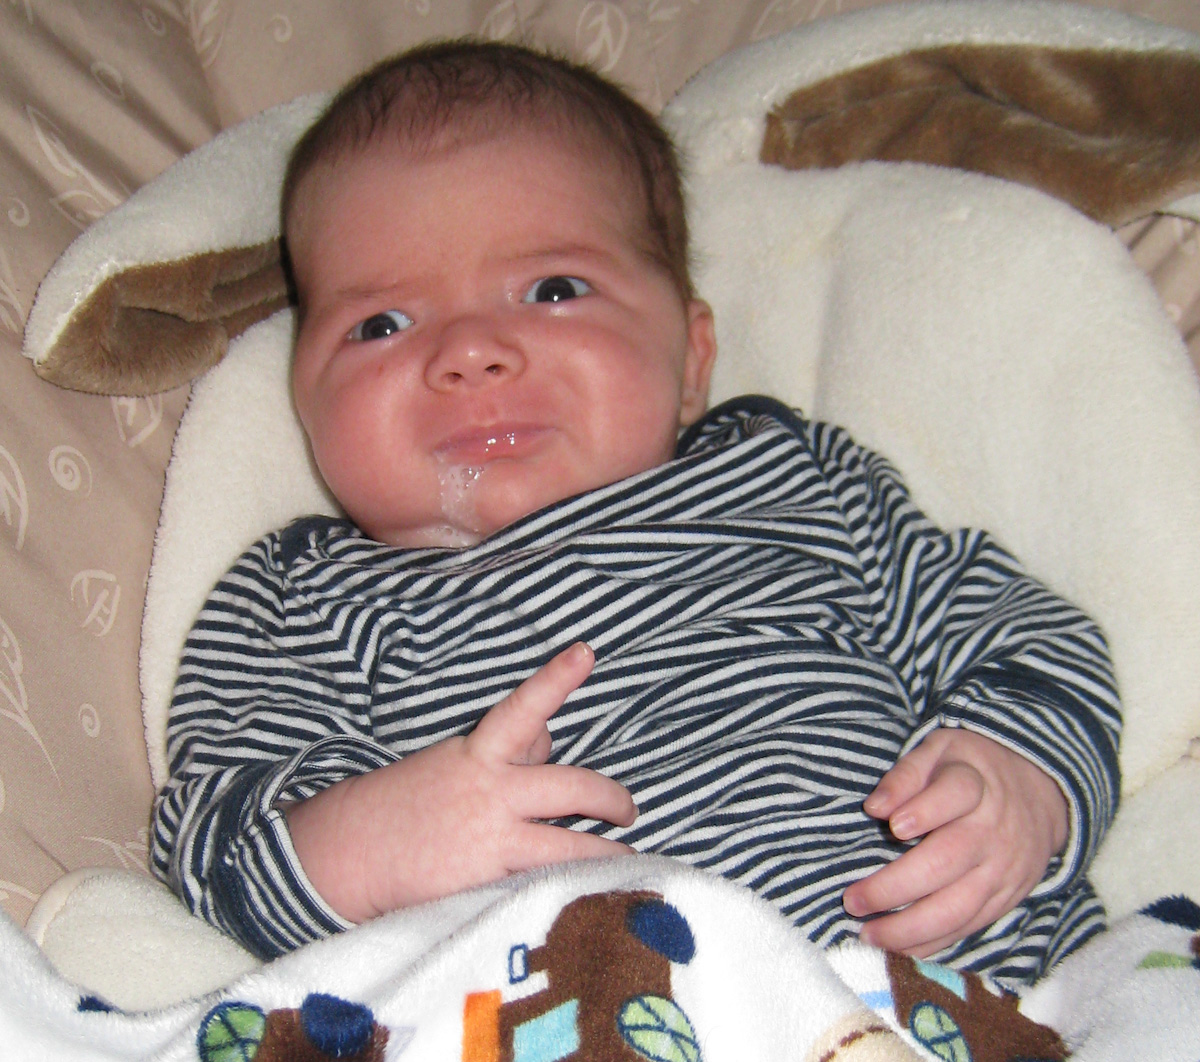 baby boy max, wearing a striped shirt, spits up while sitting in a My Little Snugabunny Baby Bouncer